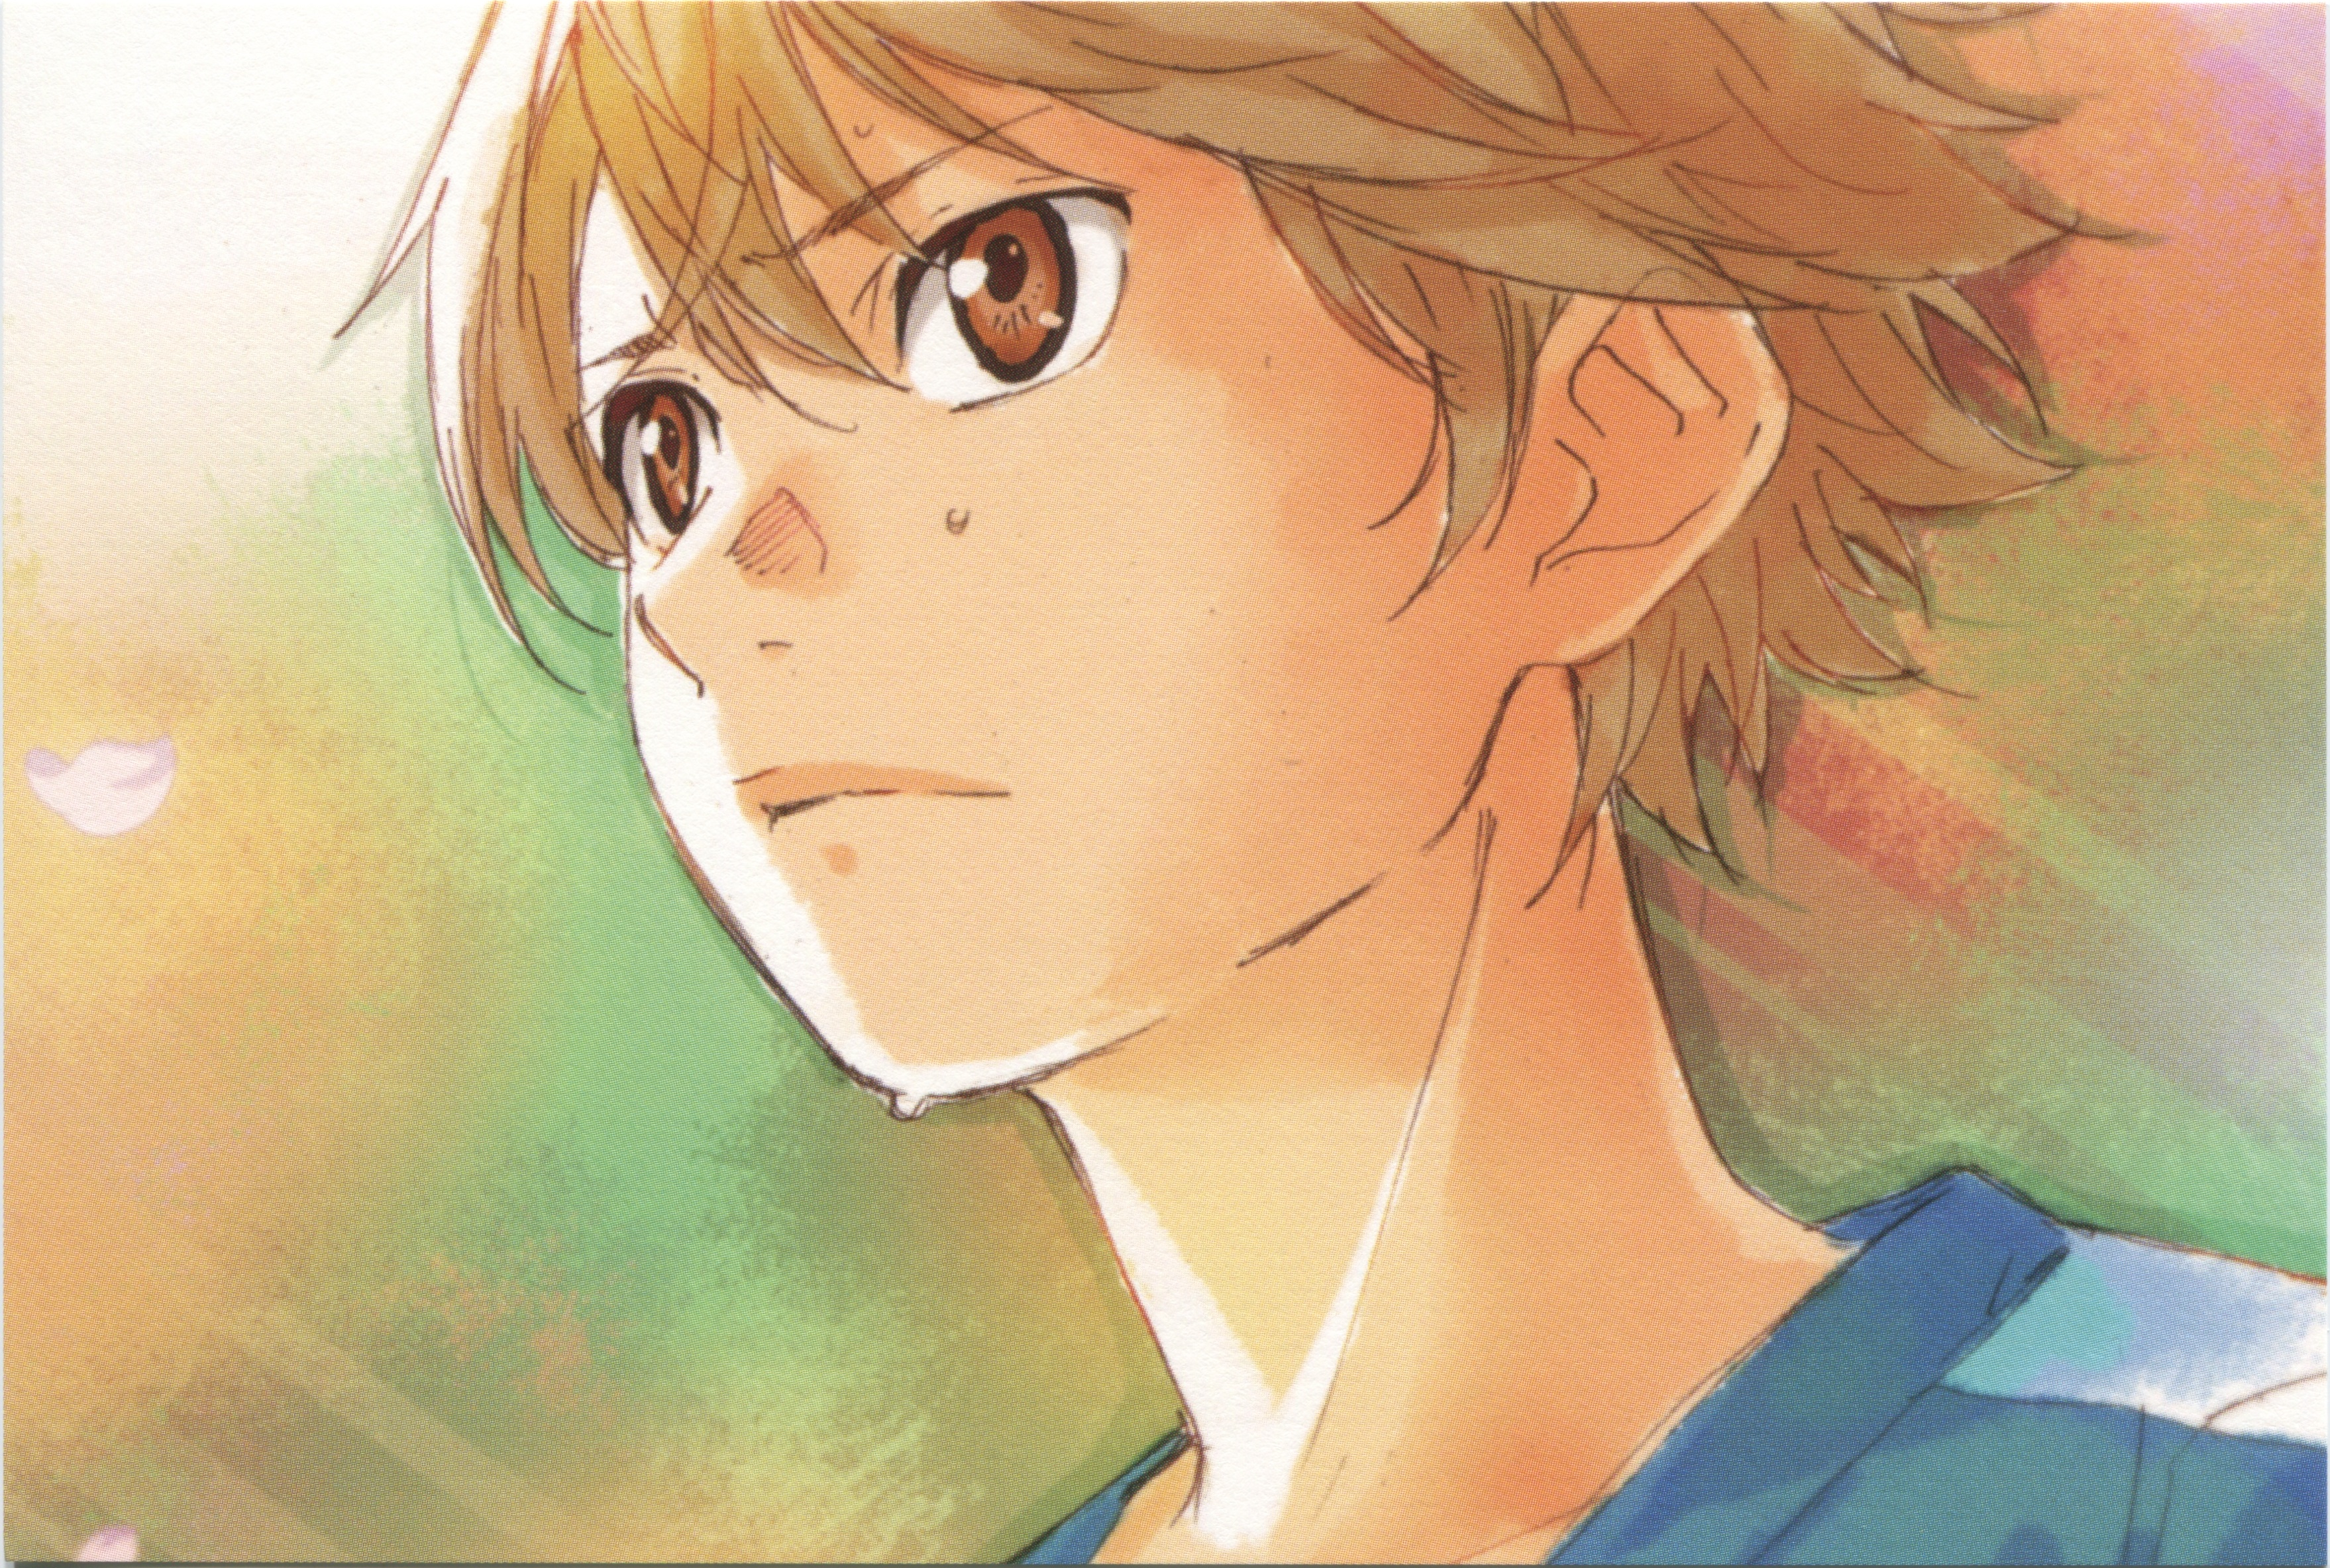 Download Wallpaper From Anime Your Lie In April With Ryota Watari 302175 Hd Wallpaper Backgrounds Download